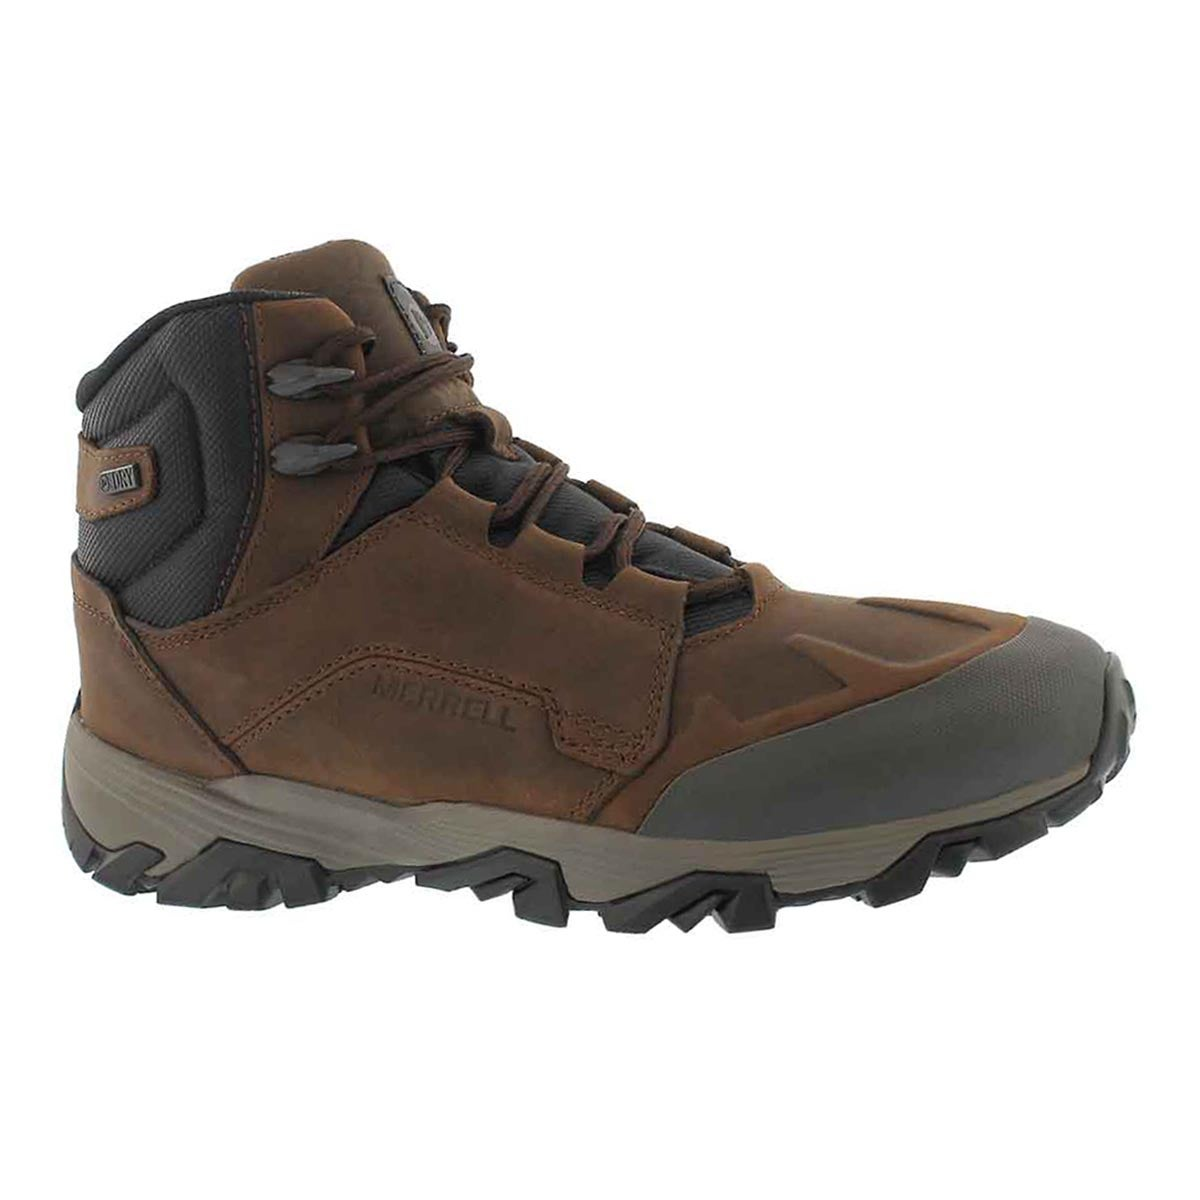 Men's COLDPACK ICE clay waterproof winter boots